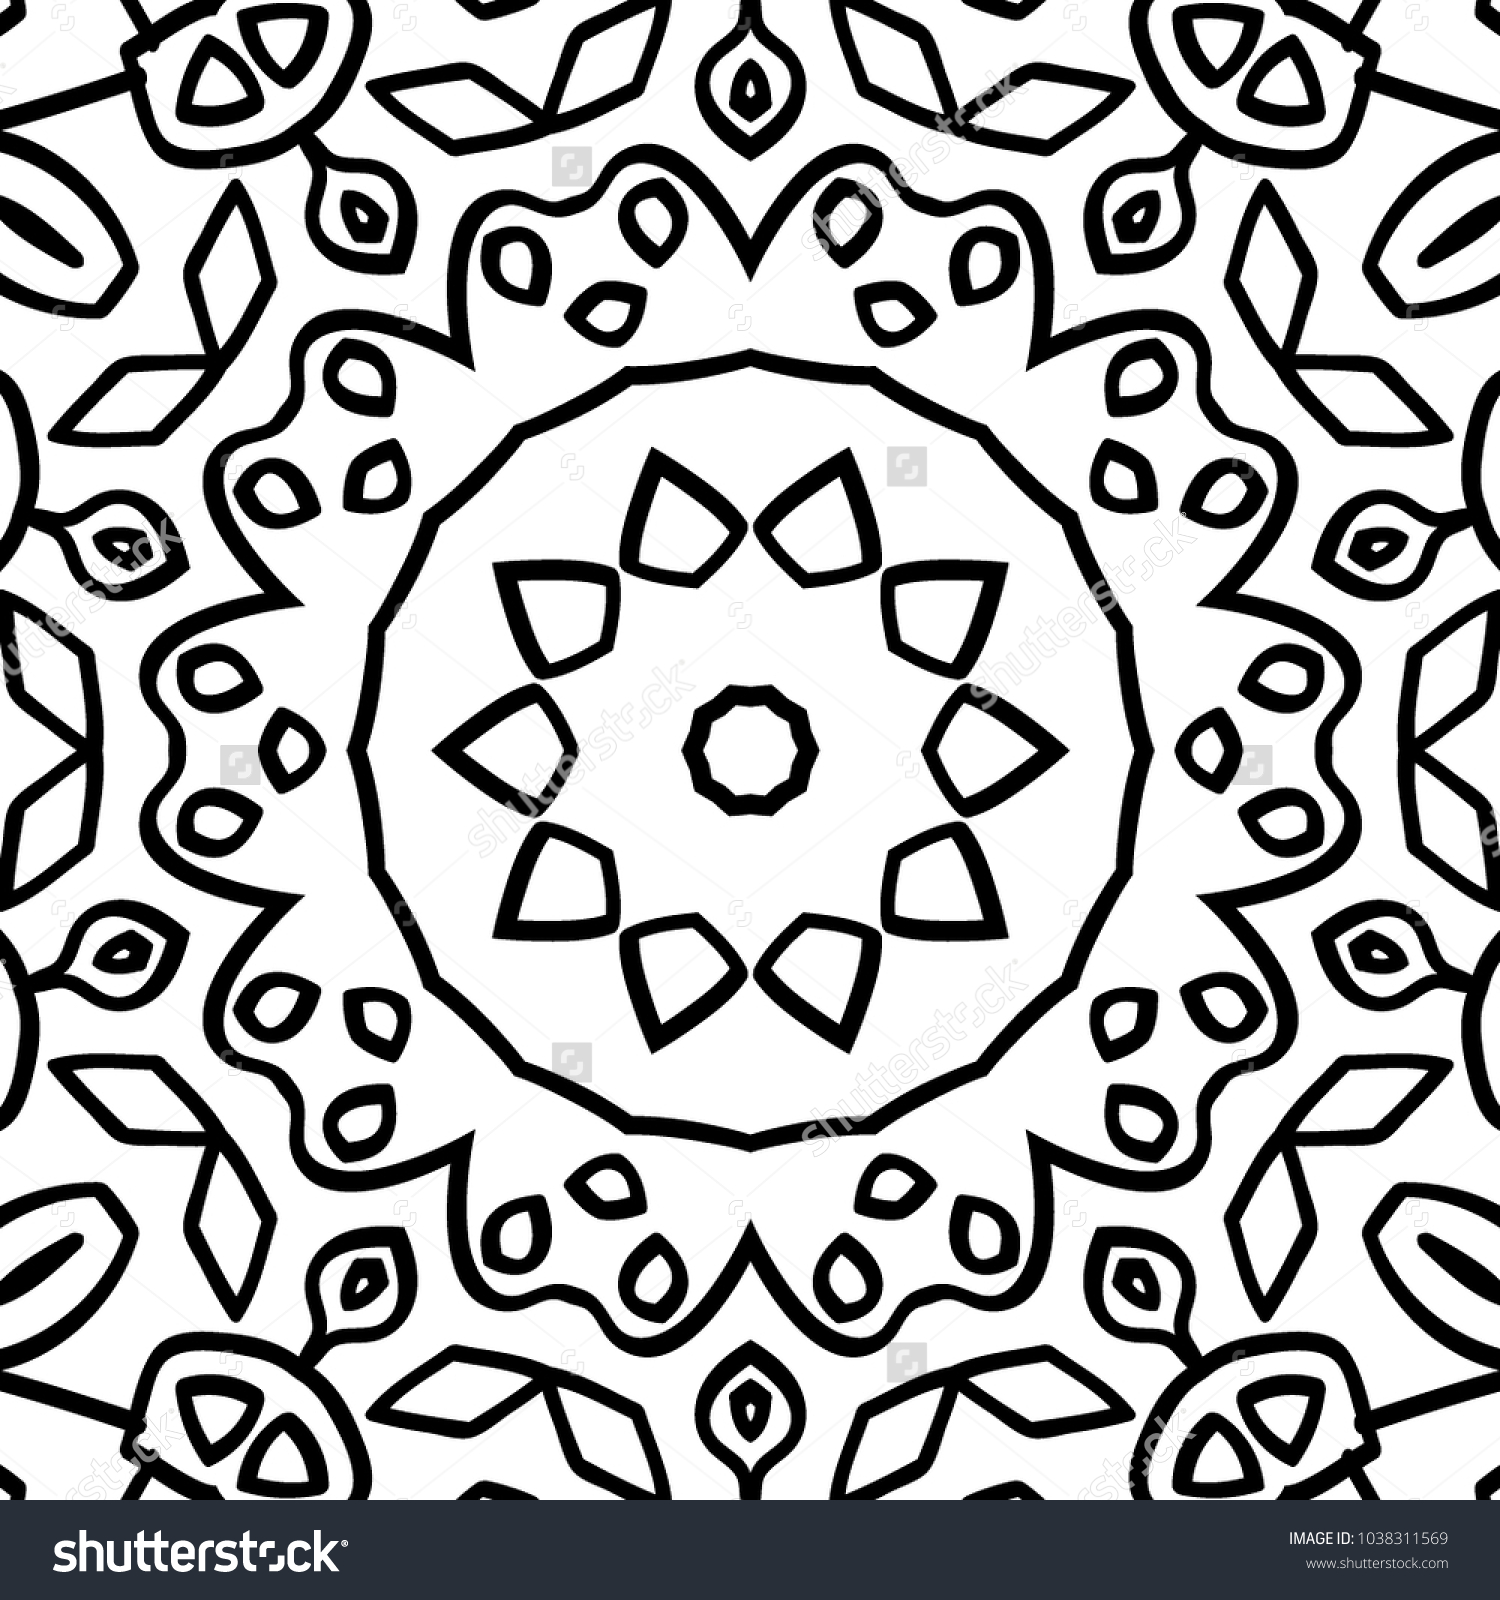 Coloring Page Adults Part Intricate Mandala Stock Vector 1038311569 ...